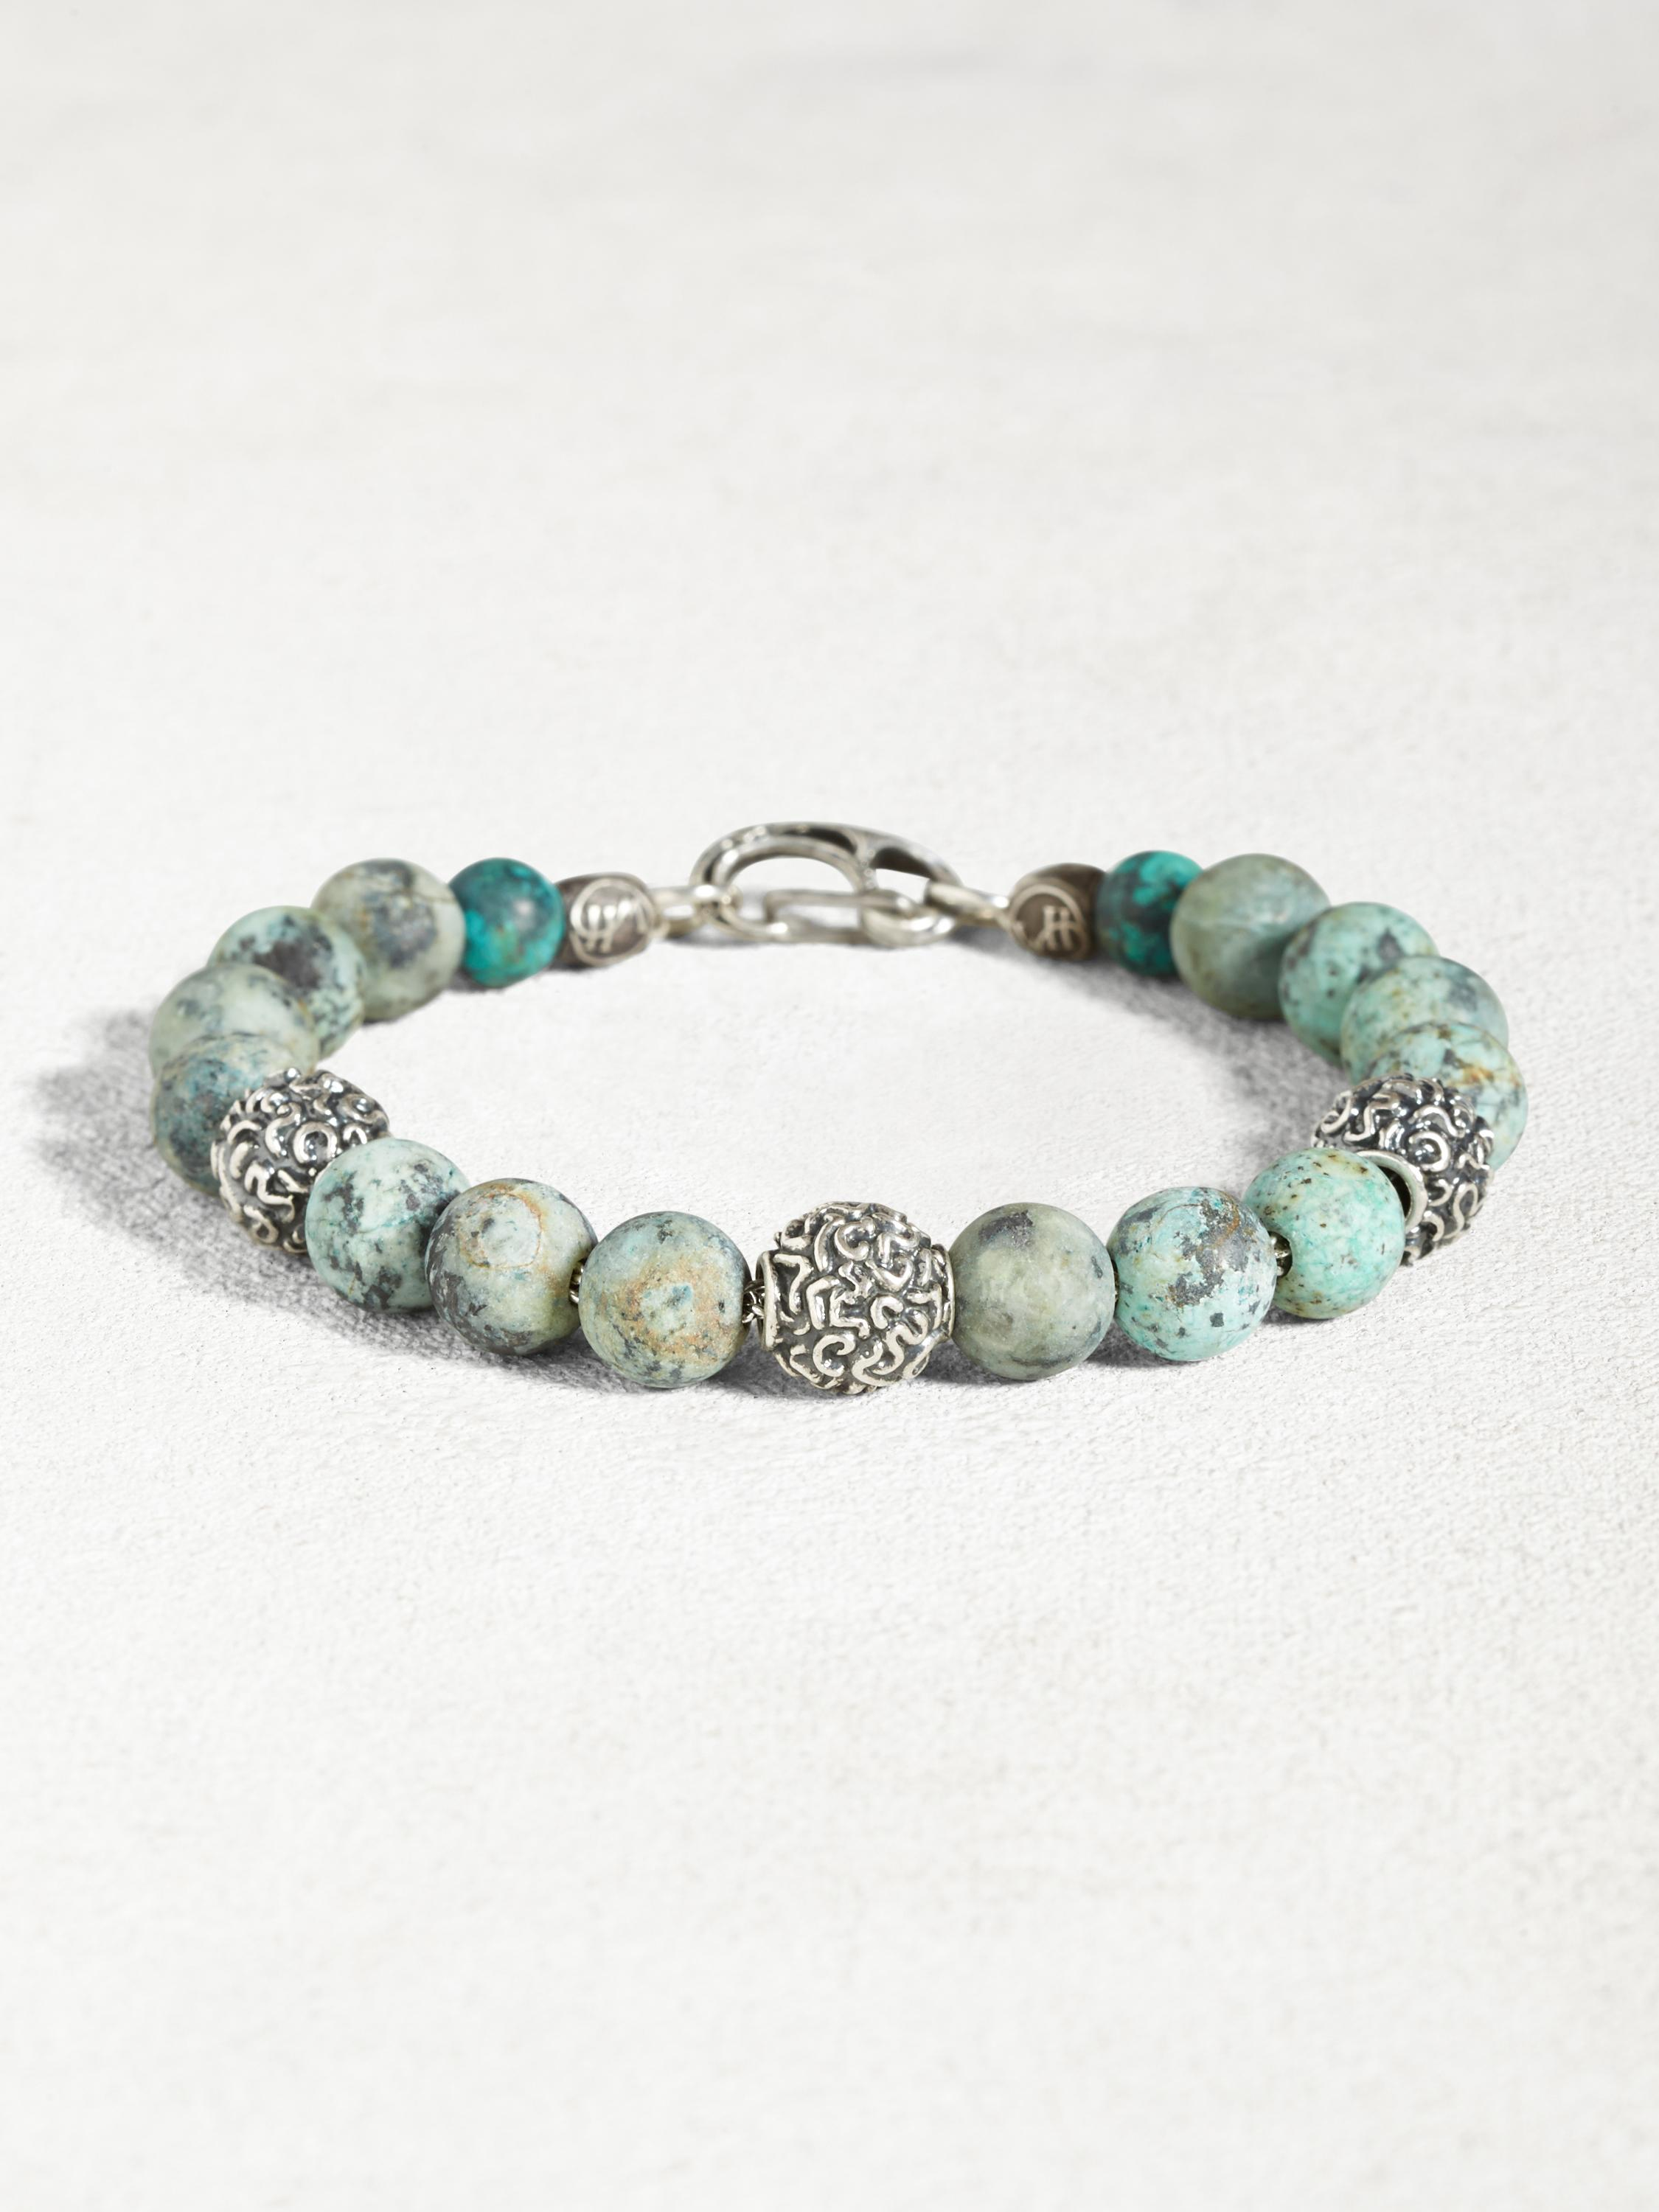 Turquoise Bracelet with Sterling Silver Beads